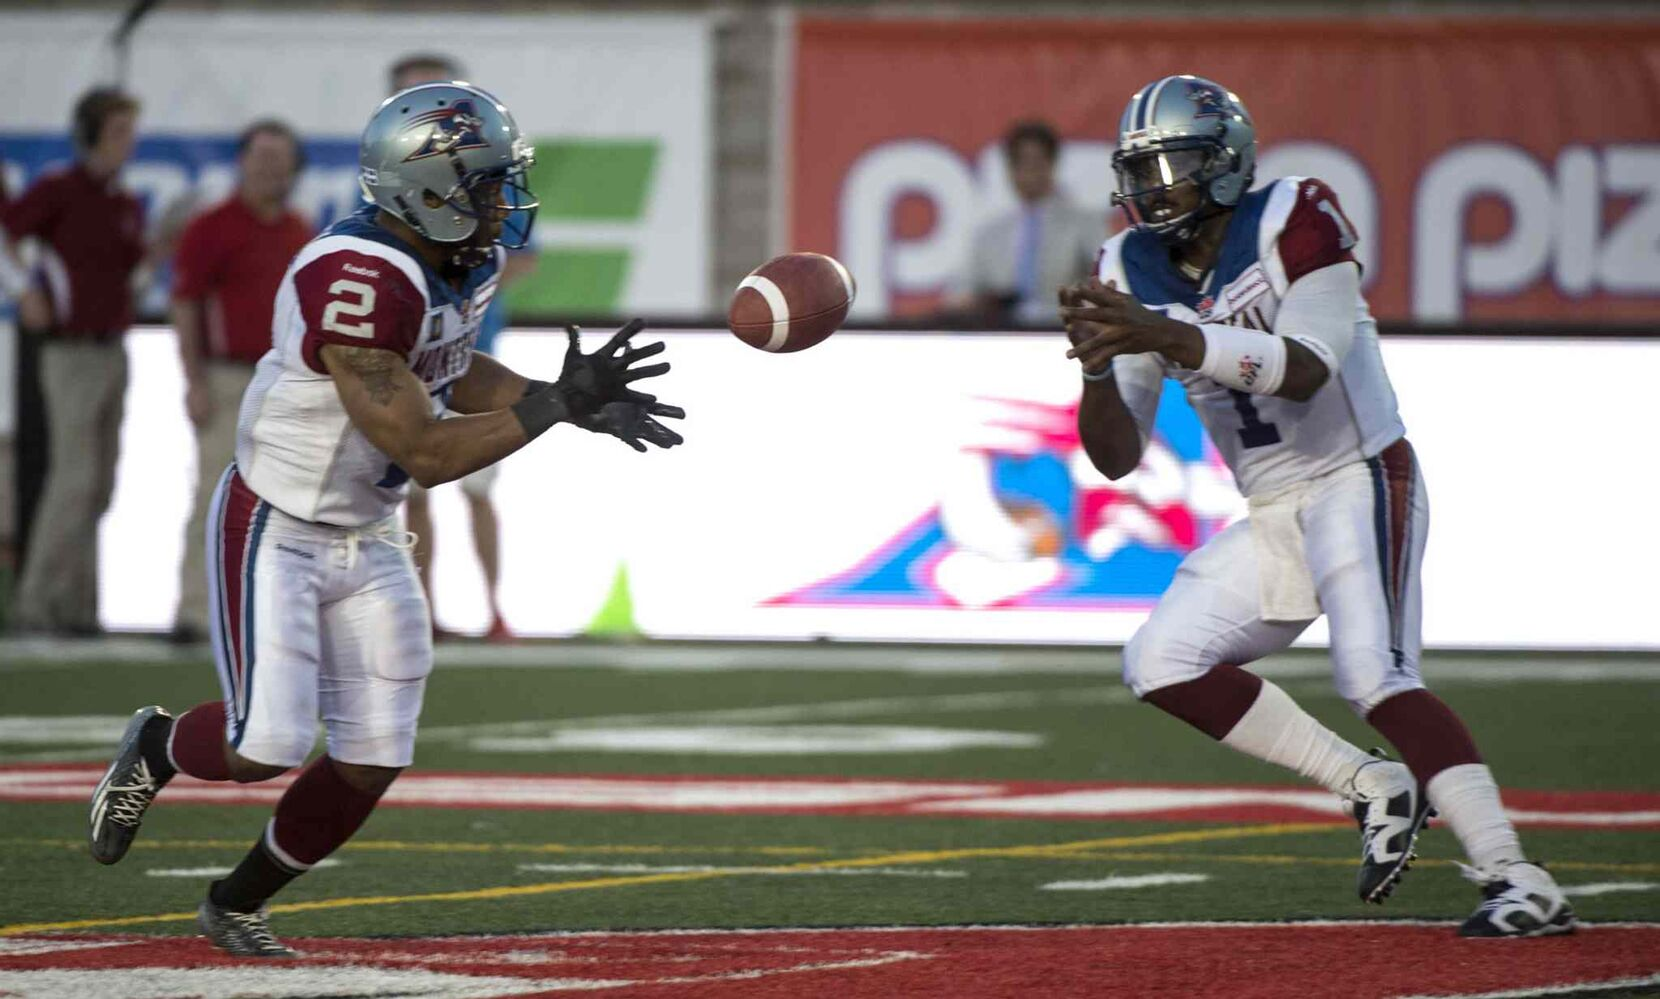 Montreal Alouettes' quarterback Troy Smith lobs the ball to teammate Brandon Whitaker as they face the Winnipeg Blue Bombers during the second quarter.  (Paul Chiasson / The Canadian Press)